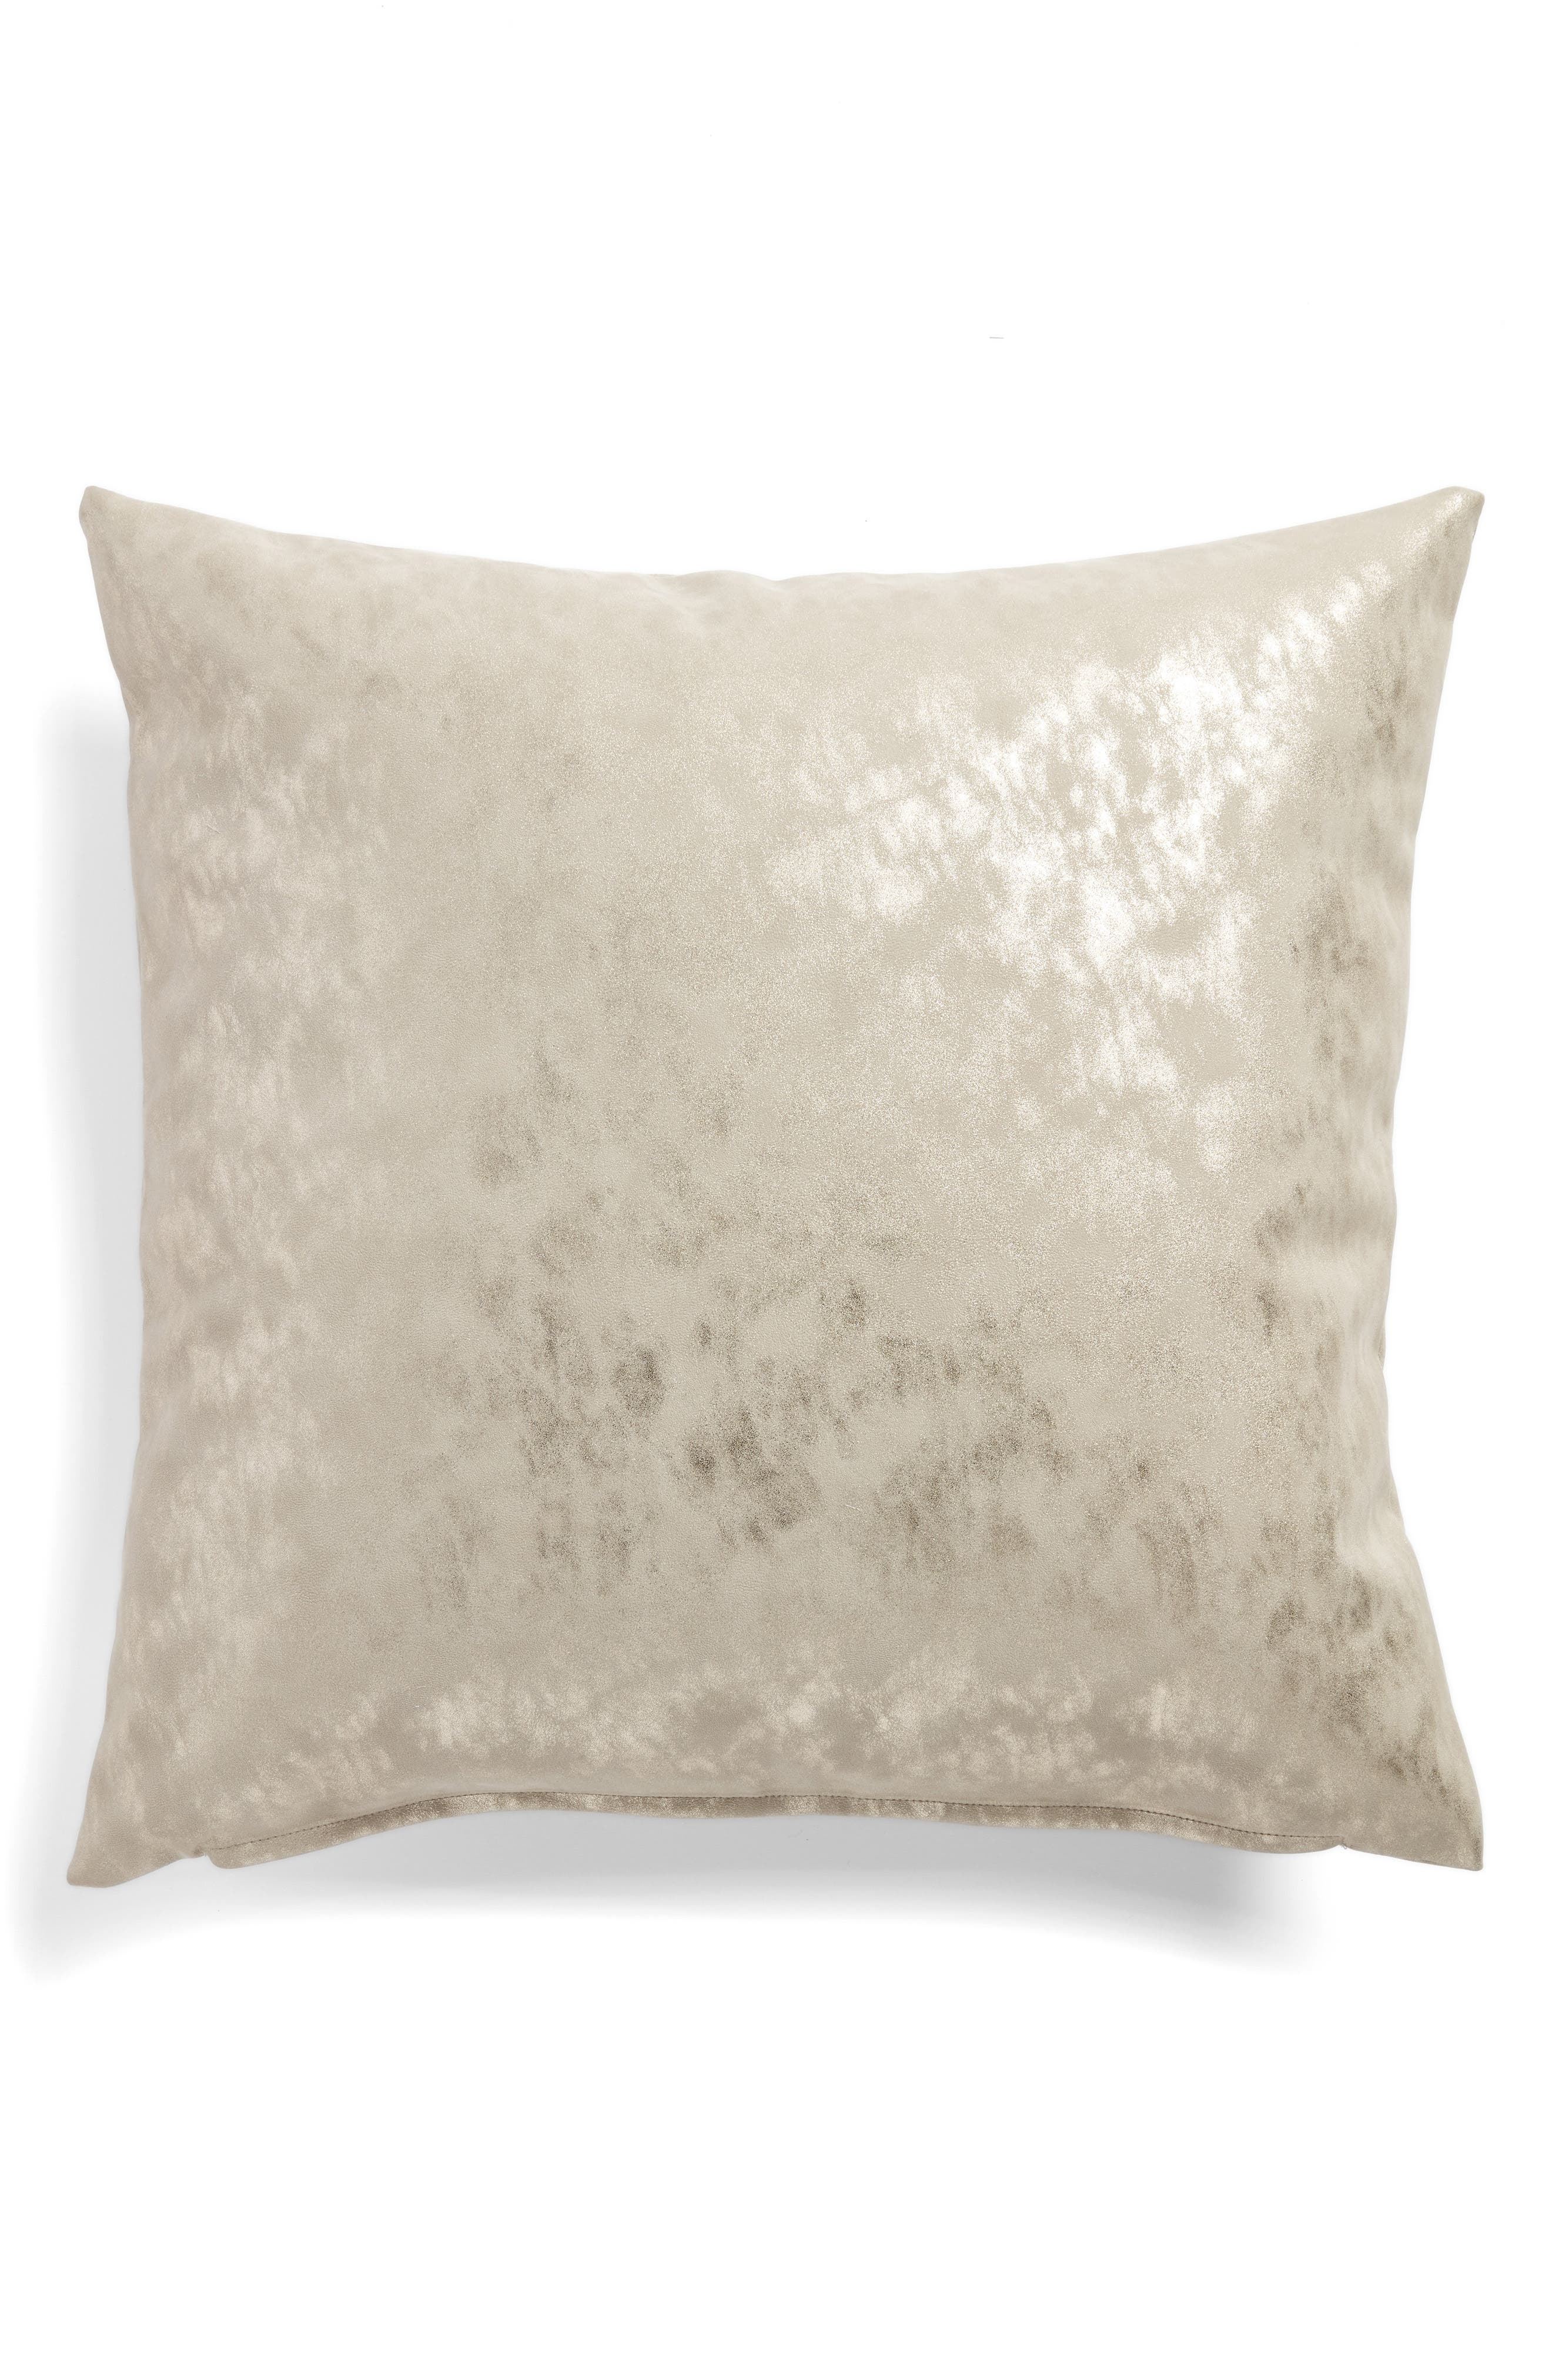 Shimmer Accent Pillow,                         Main,                         color, GREY CHIME